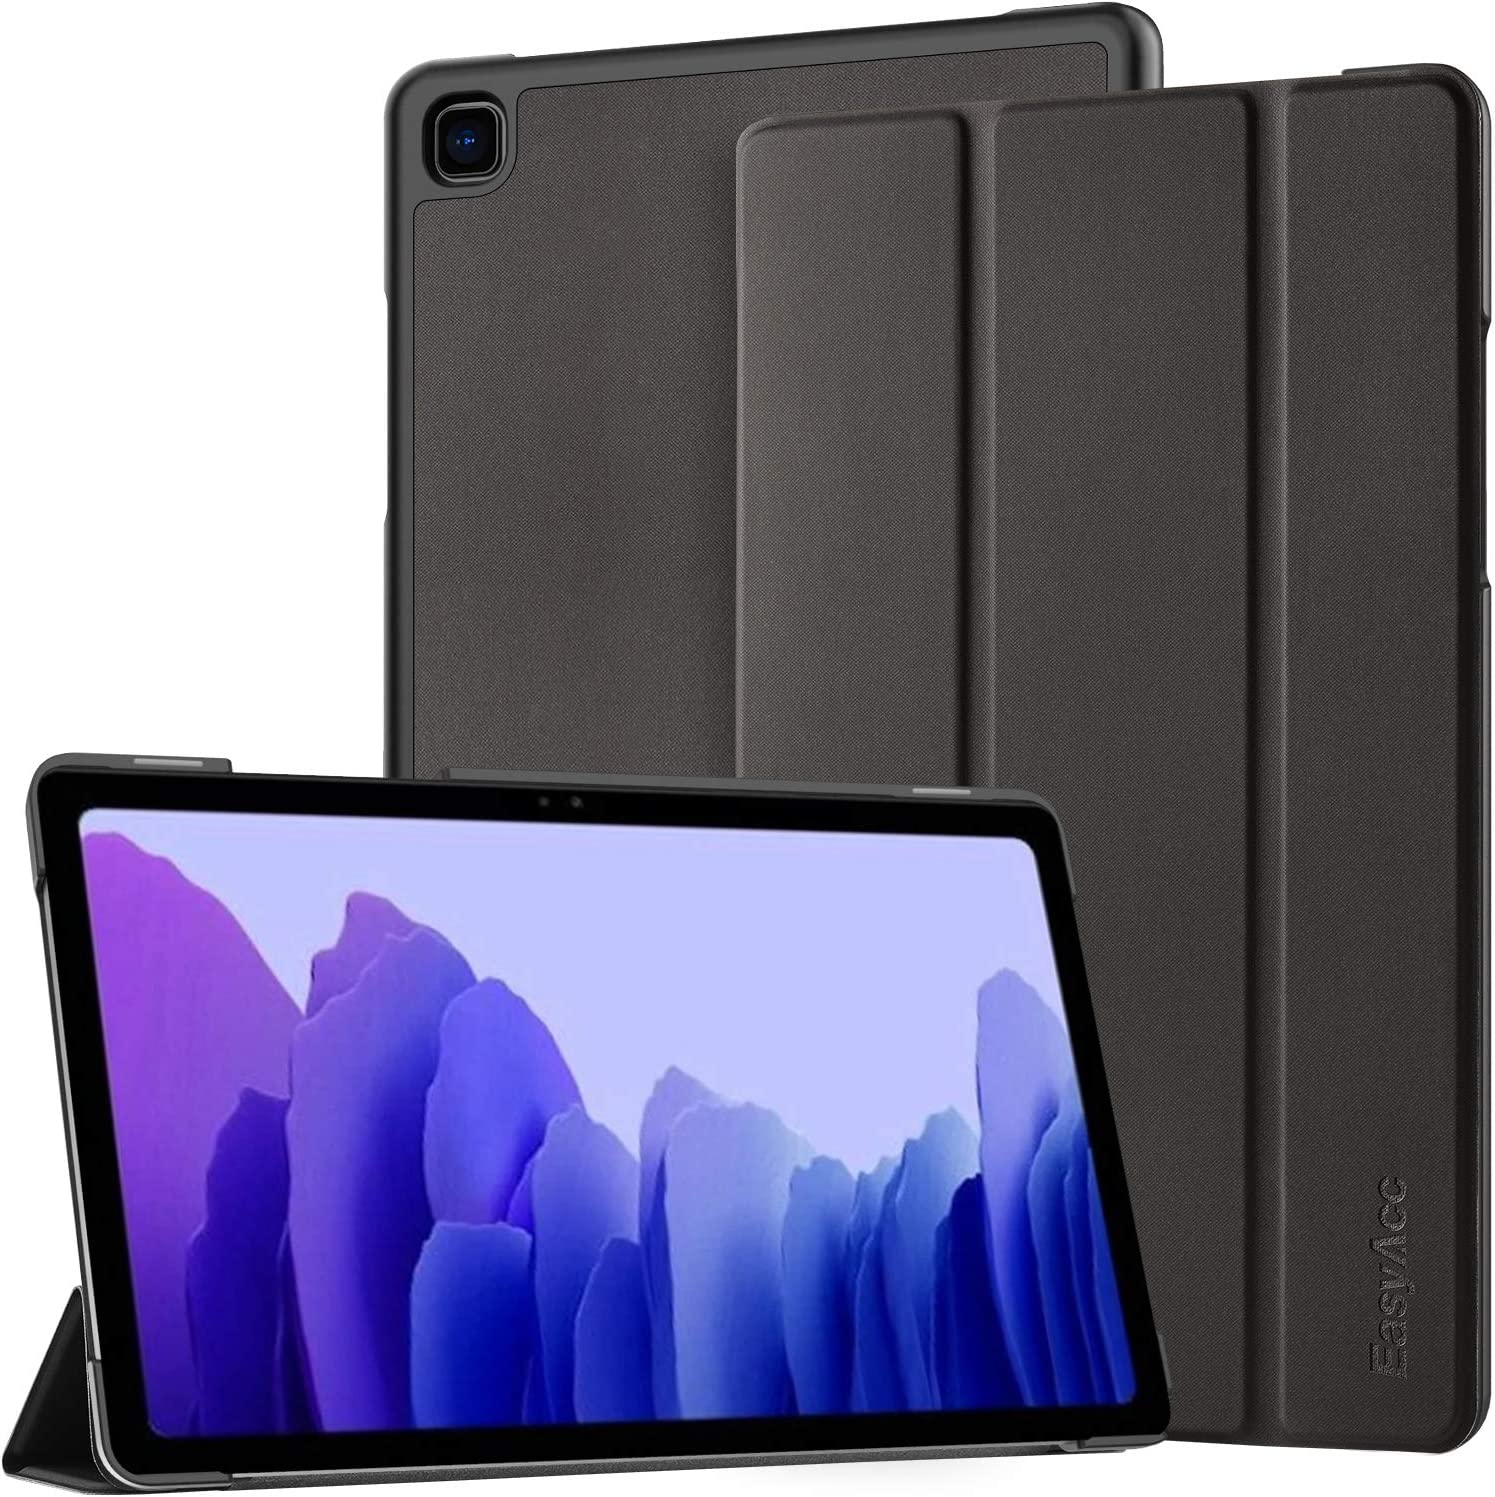 EasyAcc Case Compatible with Samsung Galaxy Tab A7 10.4 2020 Ultra Thin with Stand WAS £9.99 NOW £4.99 w/code 39XUZQIY @ Amazon